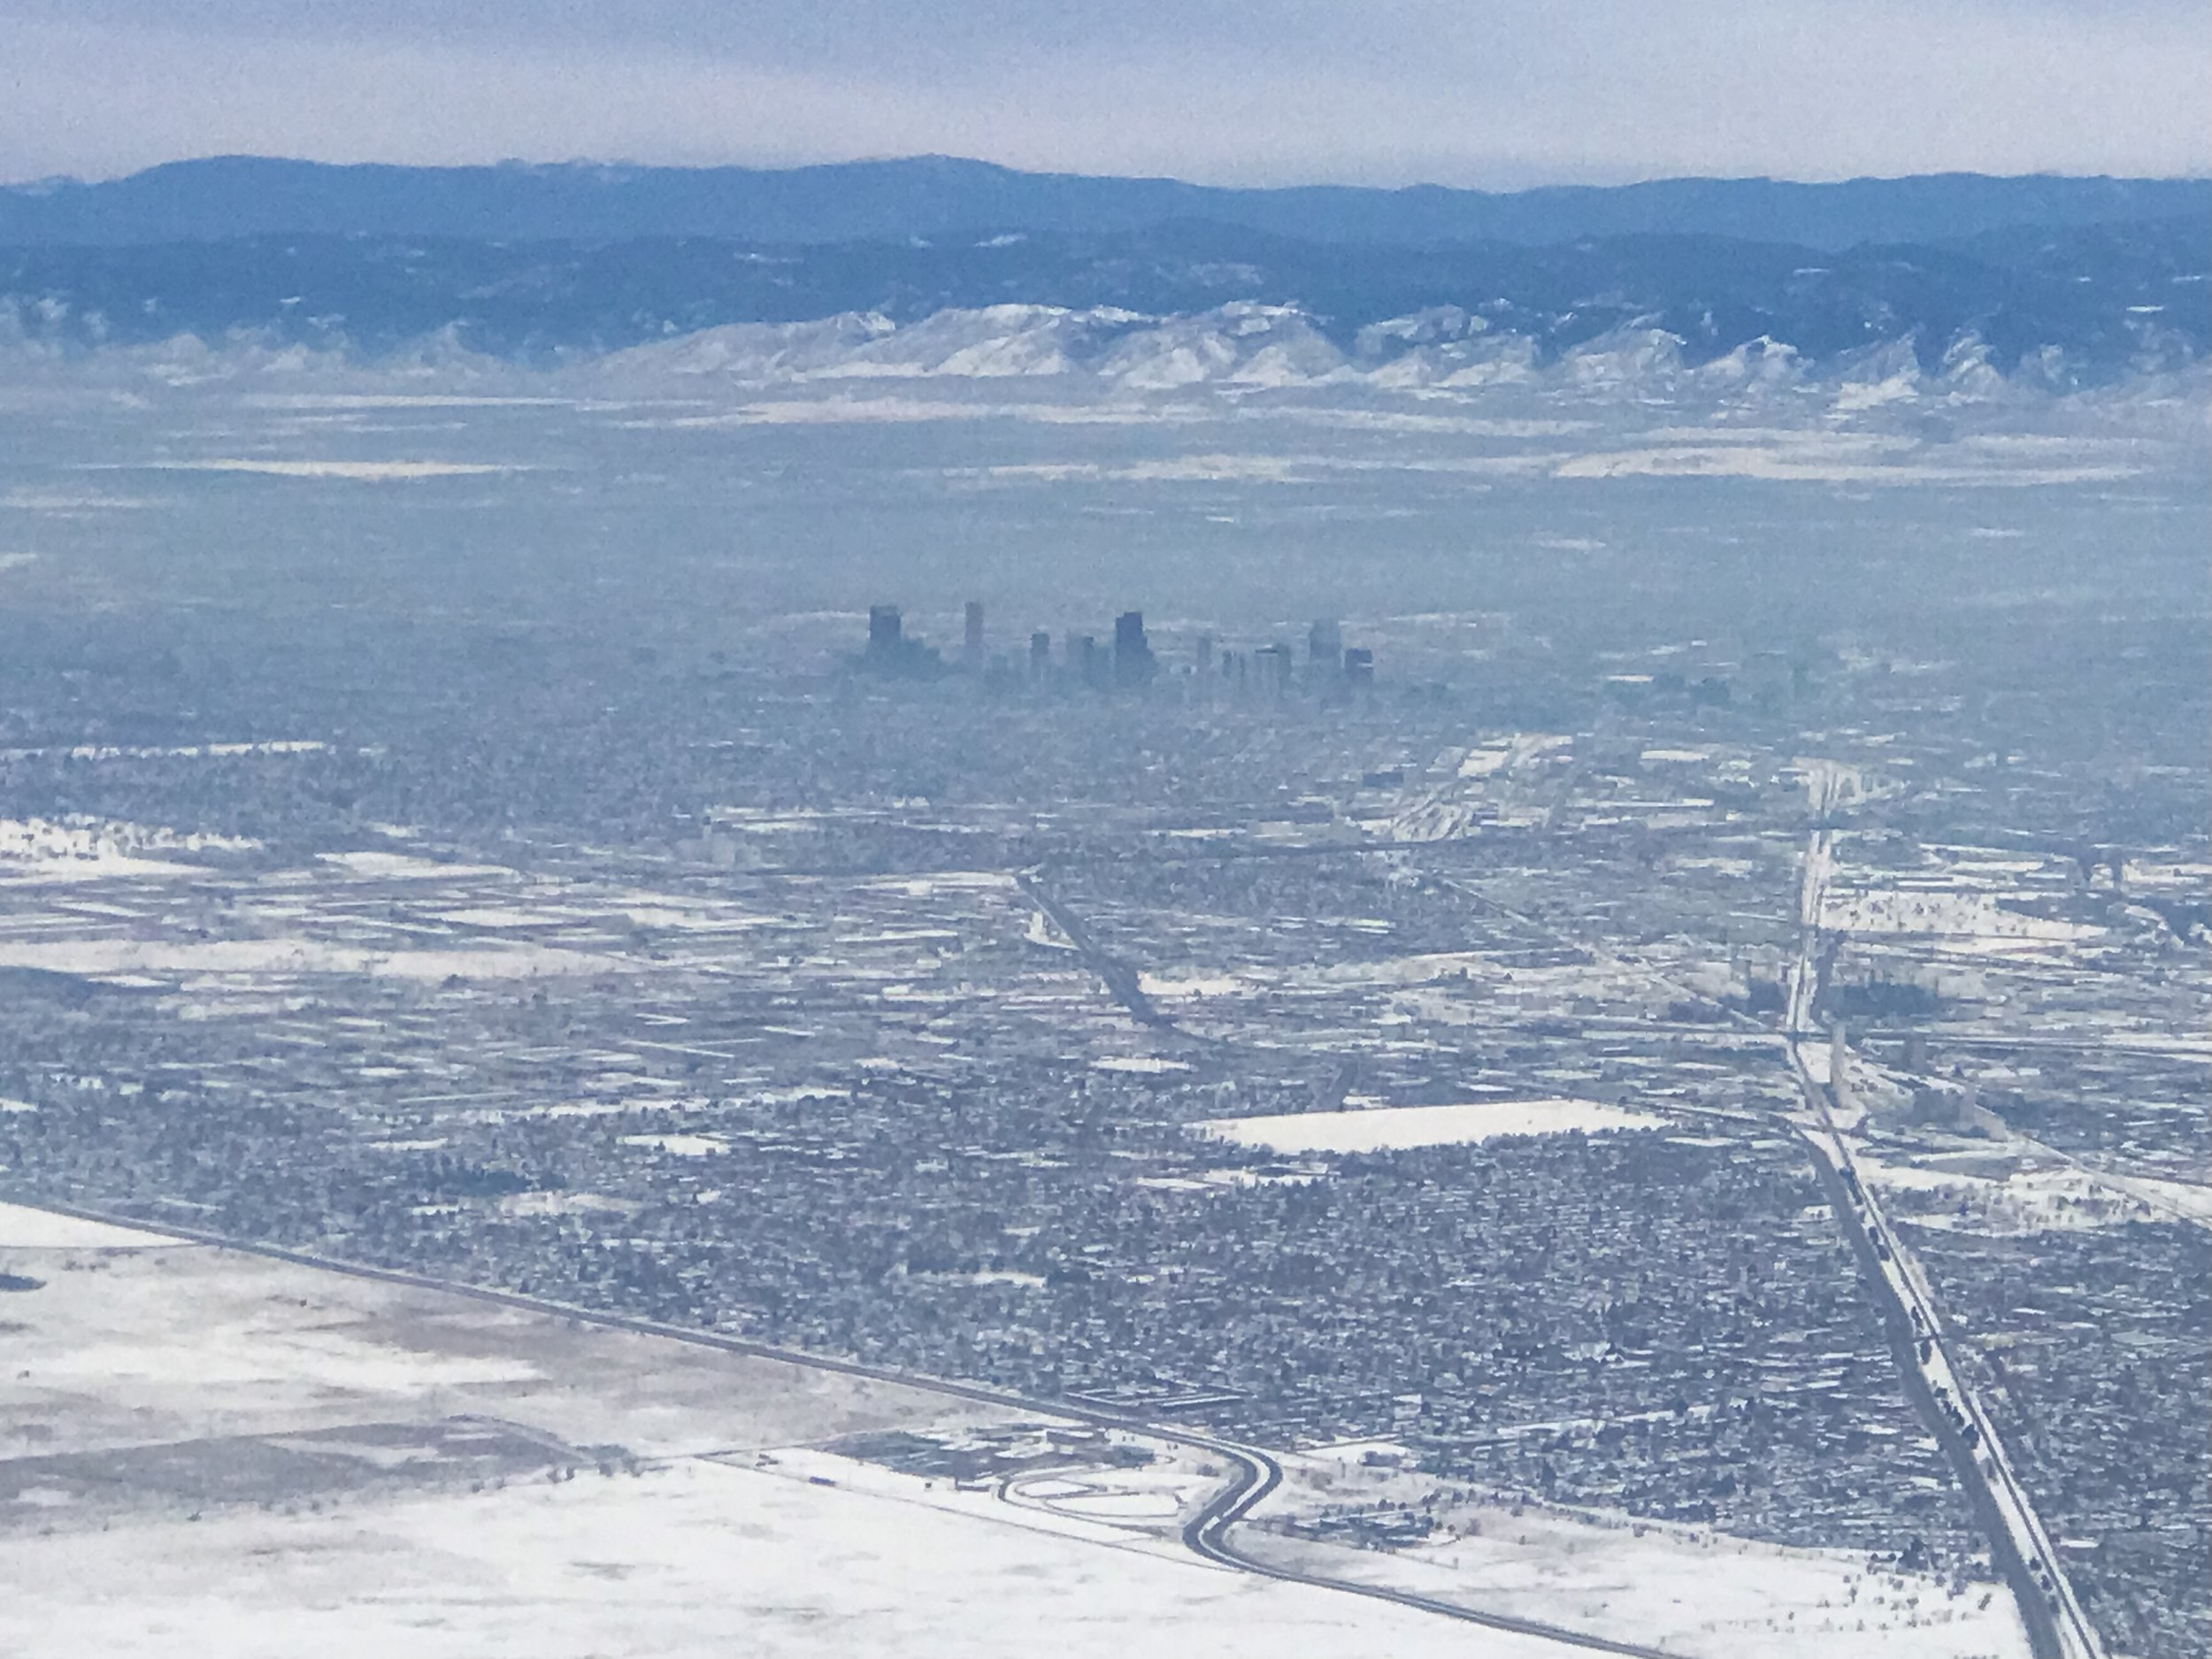 Downtown Denver in the distance as we flew west.